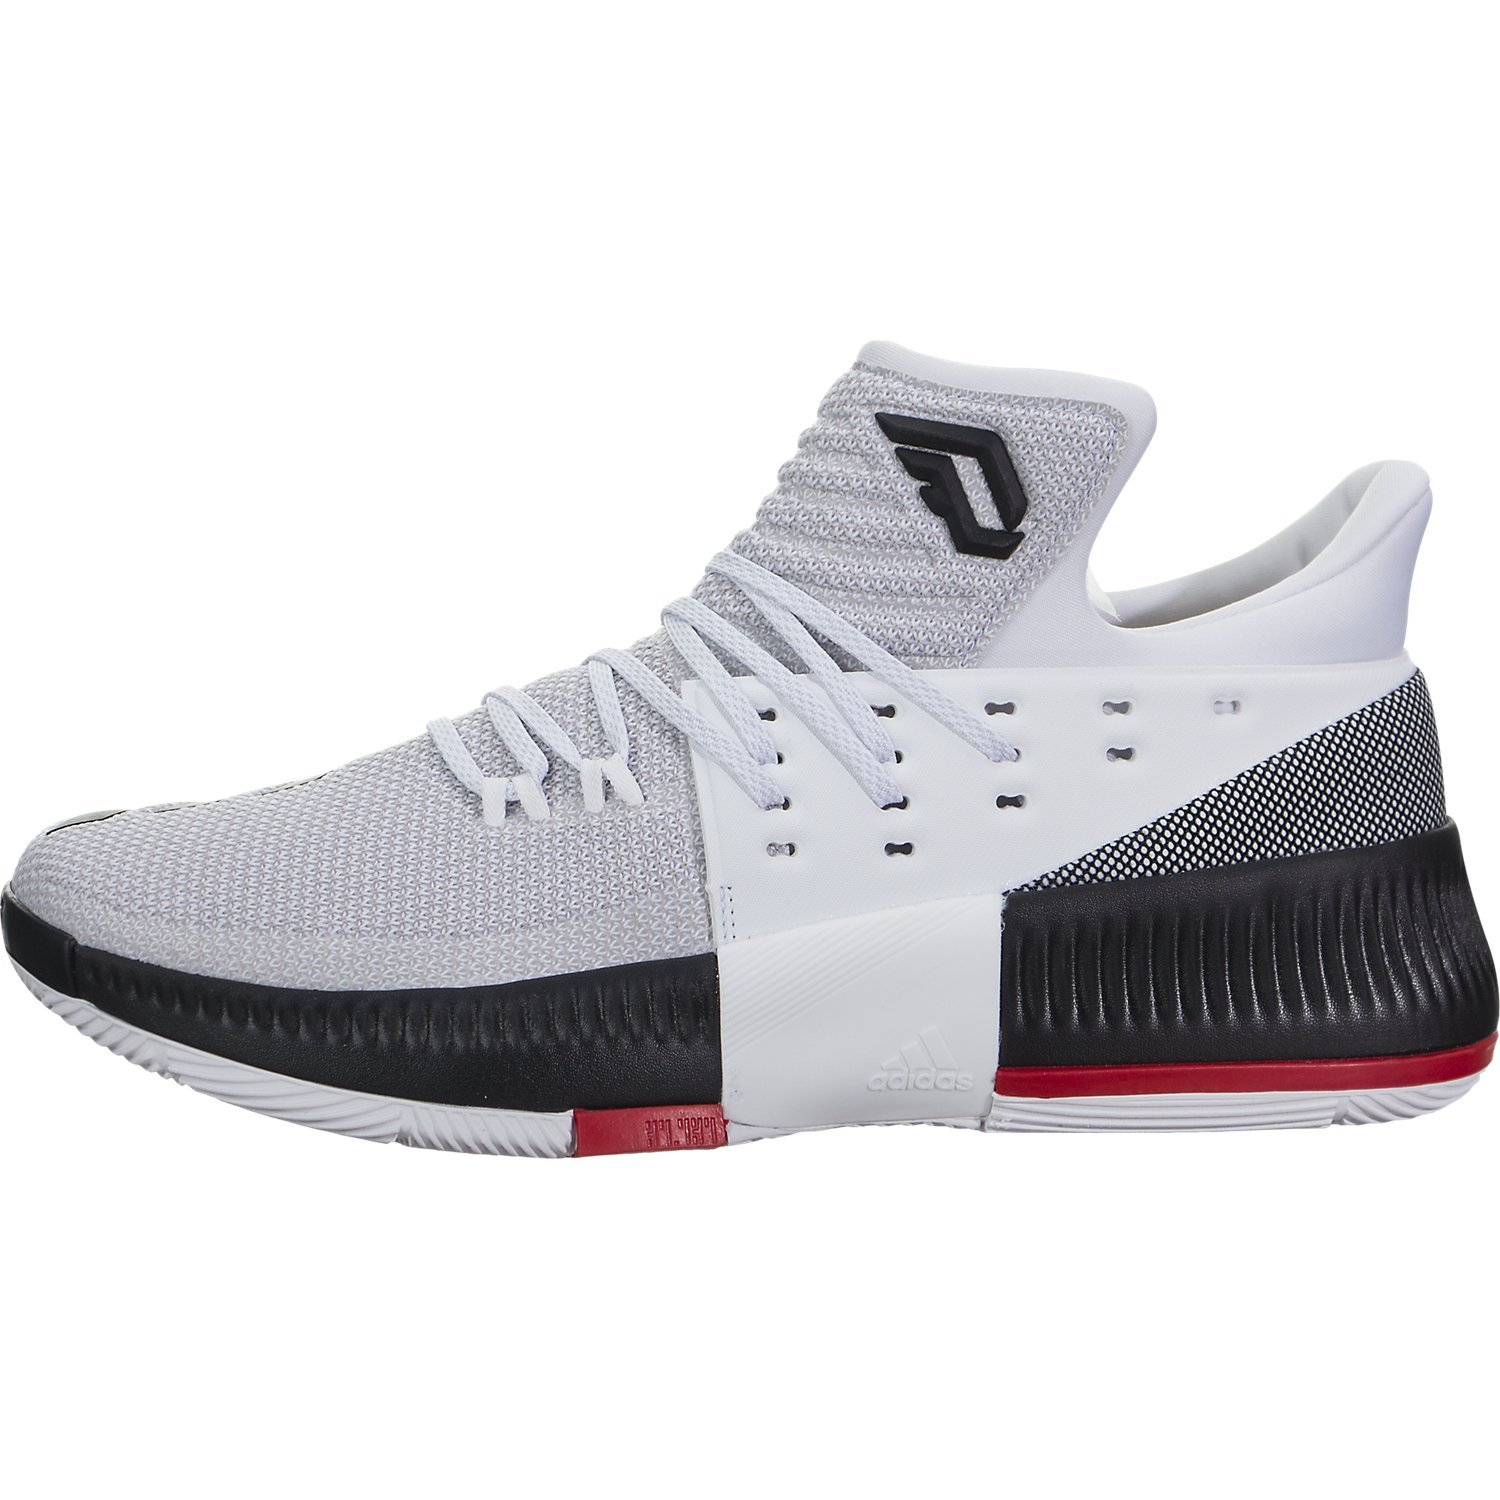 reputable site ce303 df922 Galleon - Adidas Dame 3 White Black Red Basketball Shoes 12